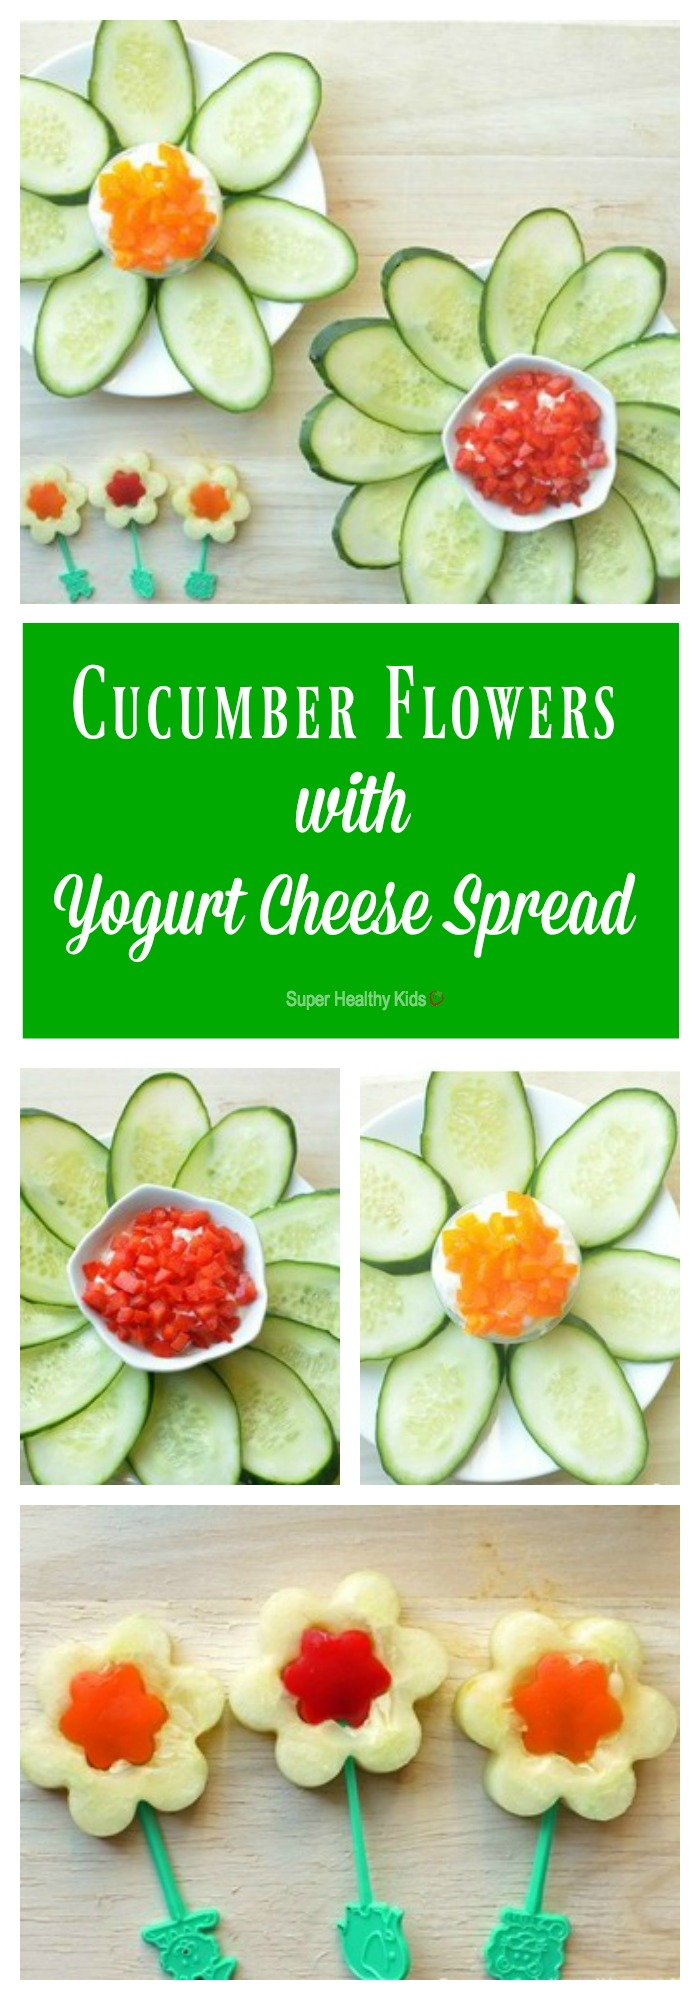 Cucumber flowers with pepper yogurt cheese spread. Strained yogurt makes a high protein dip, perfect for veggies like cucumbers! http://www.superhealthykids.com/cucumber-flowers-with-yogurt-cheese-spread/